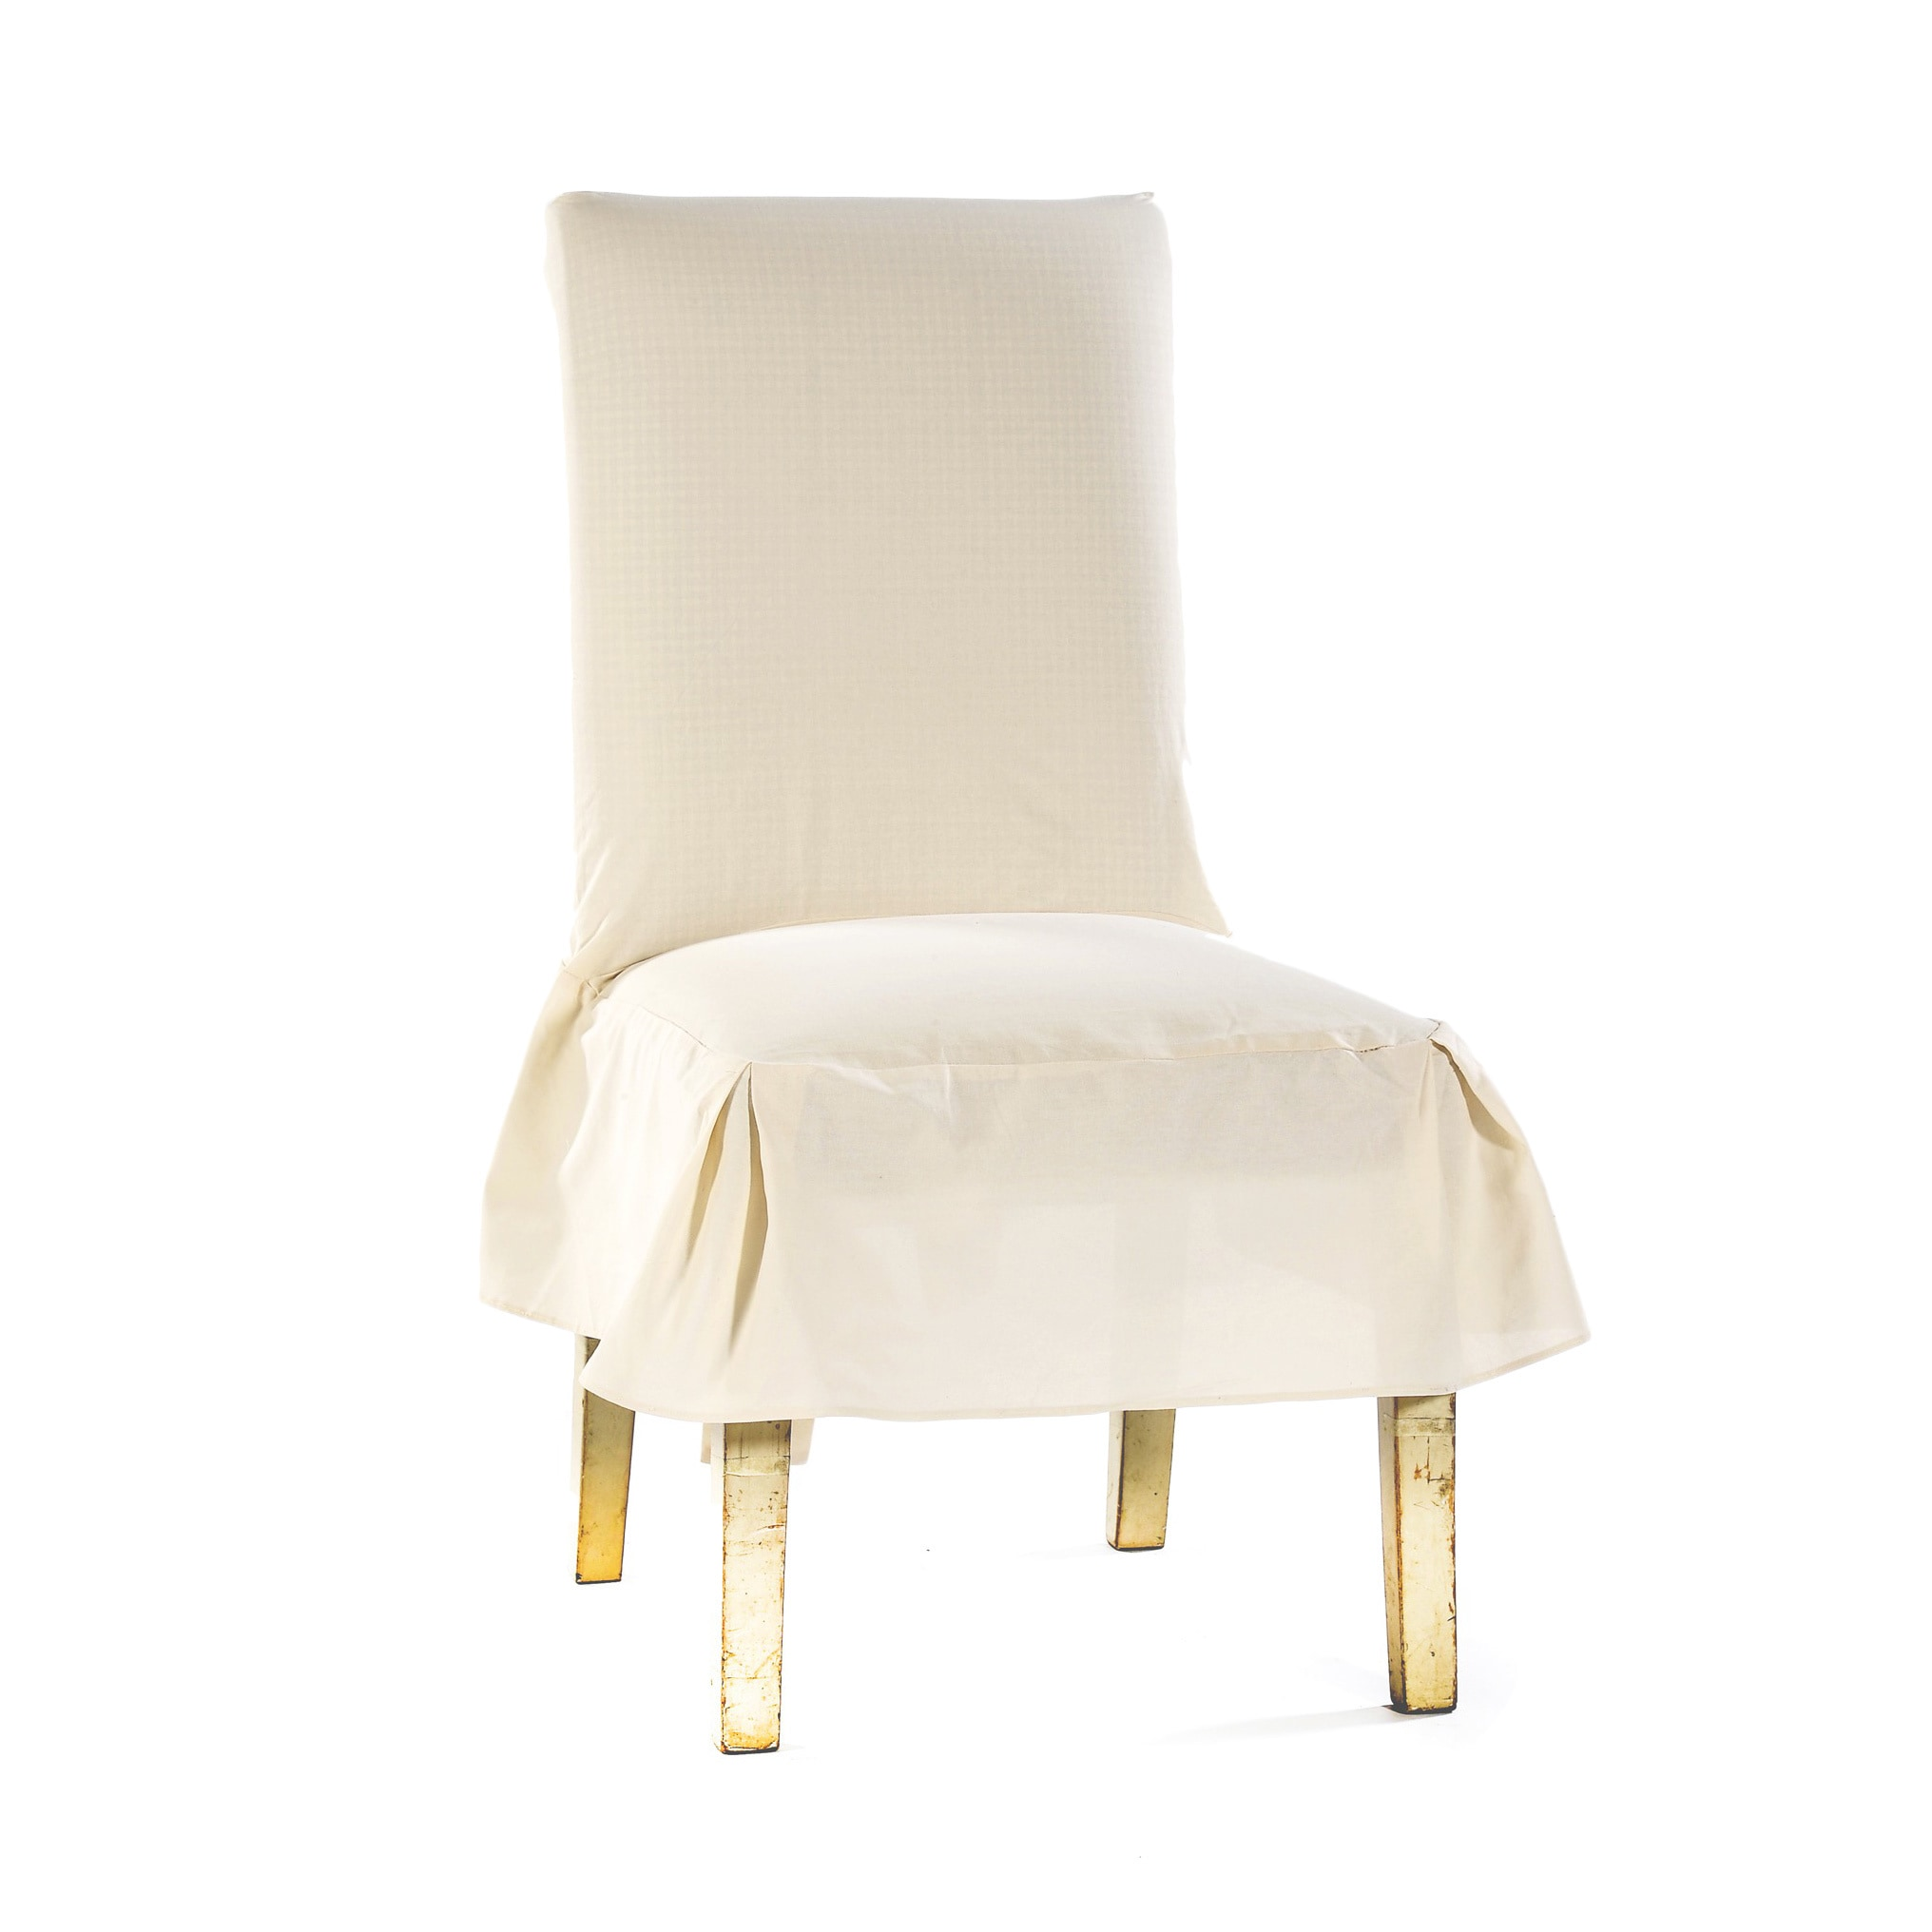 Classic Cotton Duck Dining Chair Slipcovers Set of 2 eBay : Classic Cotton Duck Dining Chair Slipcovers Set of 2 4ffabaa1 d2f3 4f2c 848b 689ba2265f60 from www.ebay.ca size 2032 x 2032 jpeg 49kB